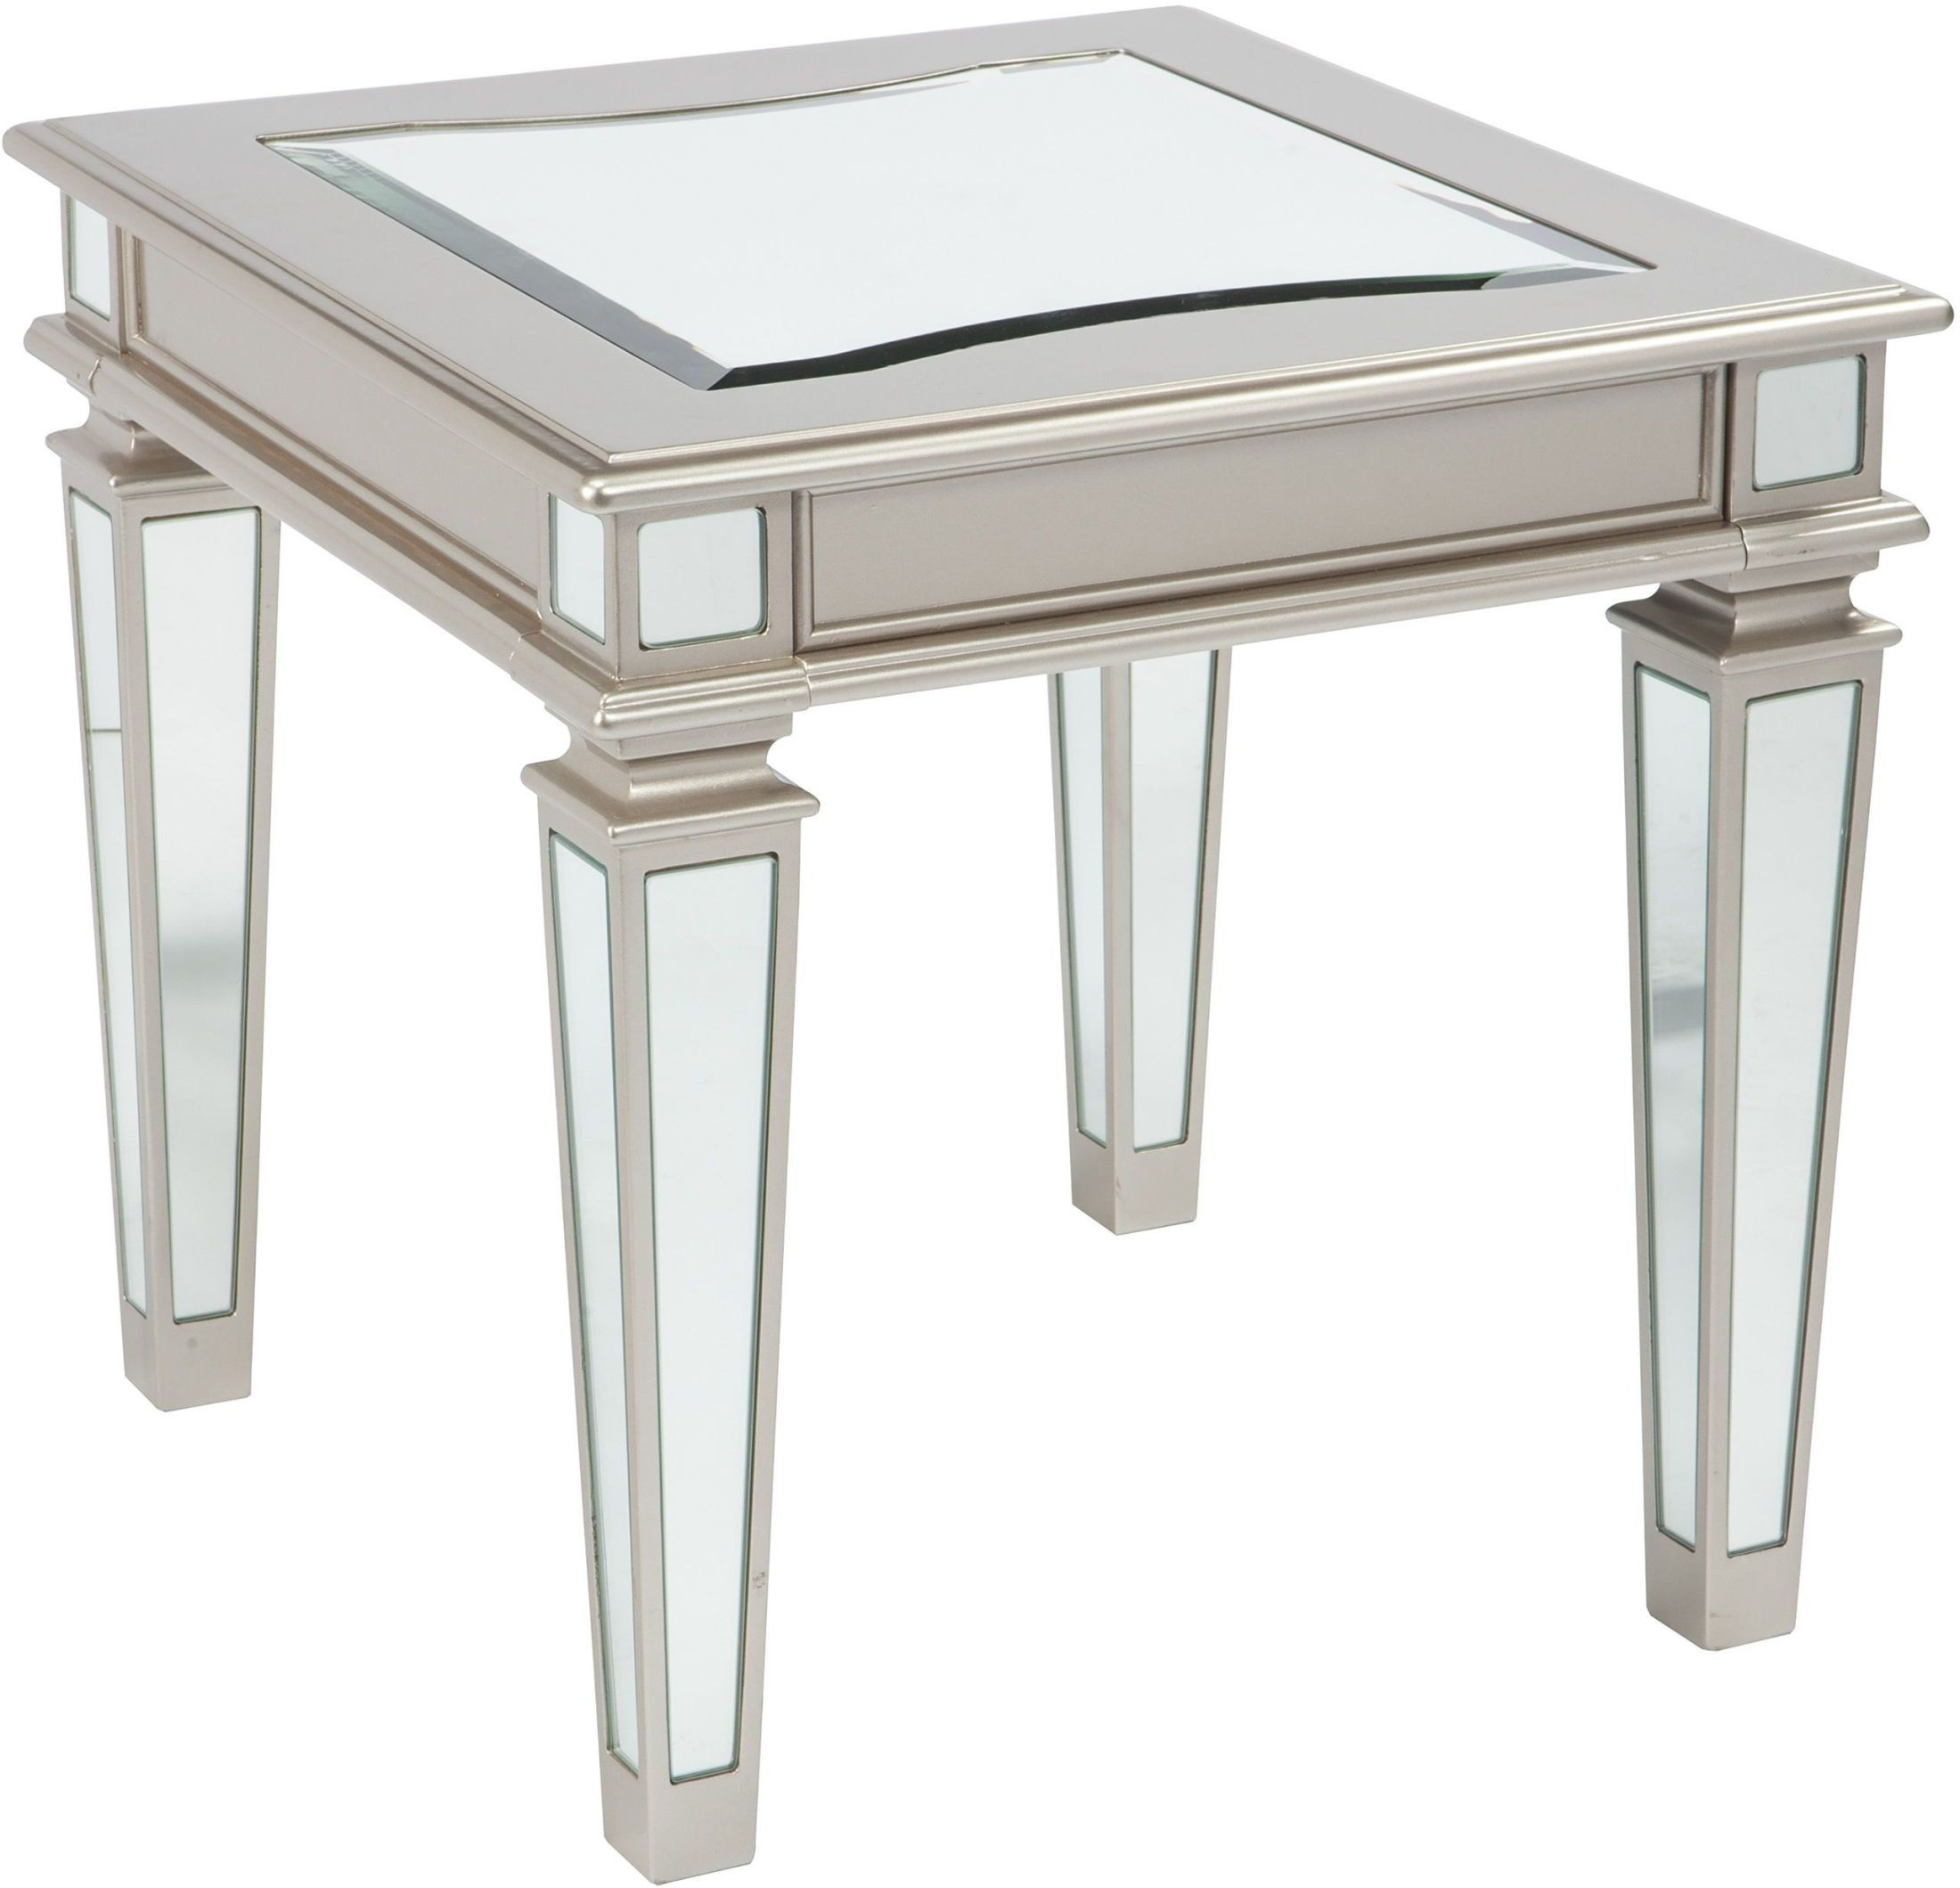 Tessani Silver Rectangular End Table, T0993, Ashley. Diy Table Runners. 3 Drawer Wicker Chest. Unfinished Writing Desk. Lift Up Table Mechanism. Red Writing Desk. Dining Room Tables Furniture. Register Drawer. Outdoor Table And Chair Set